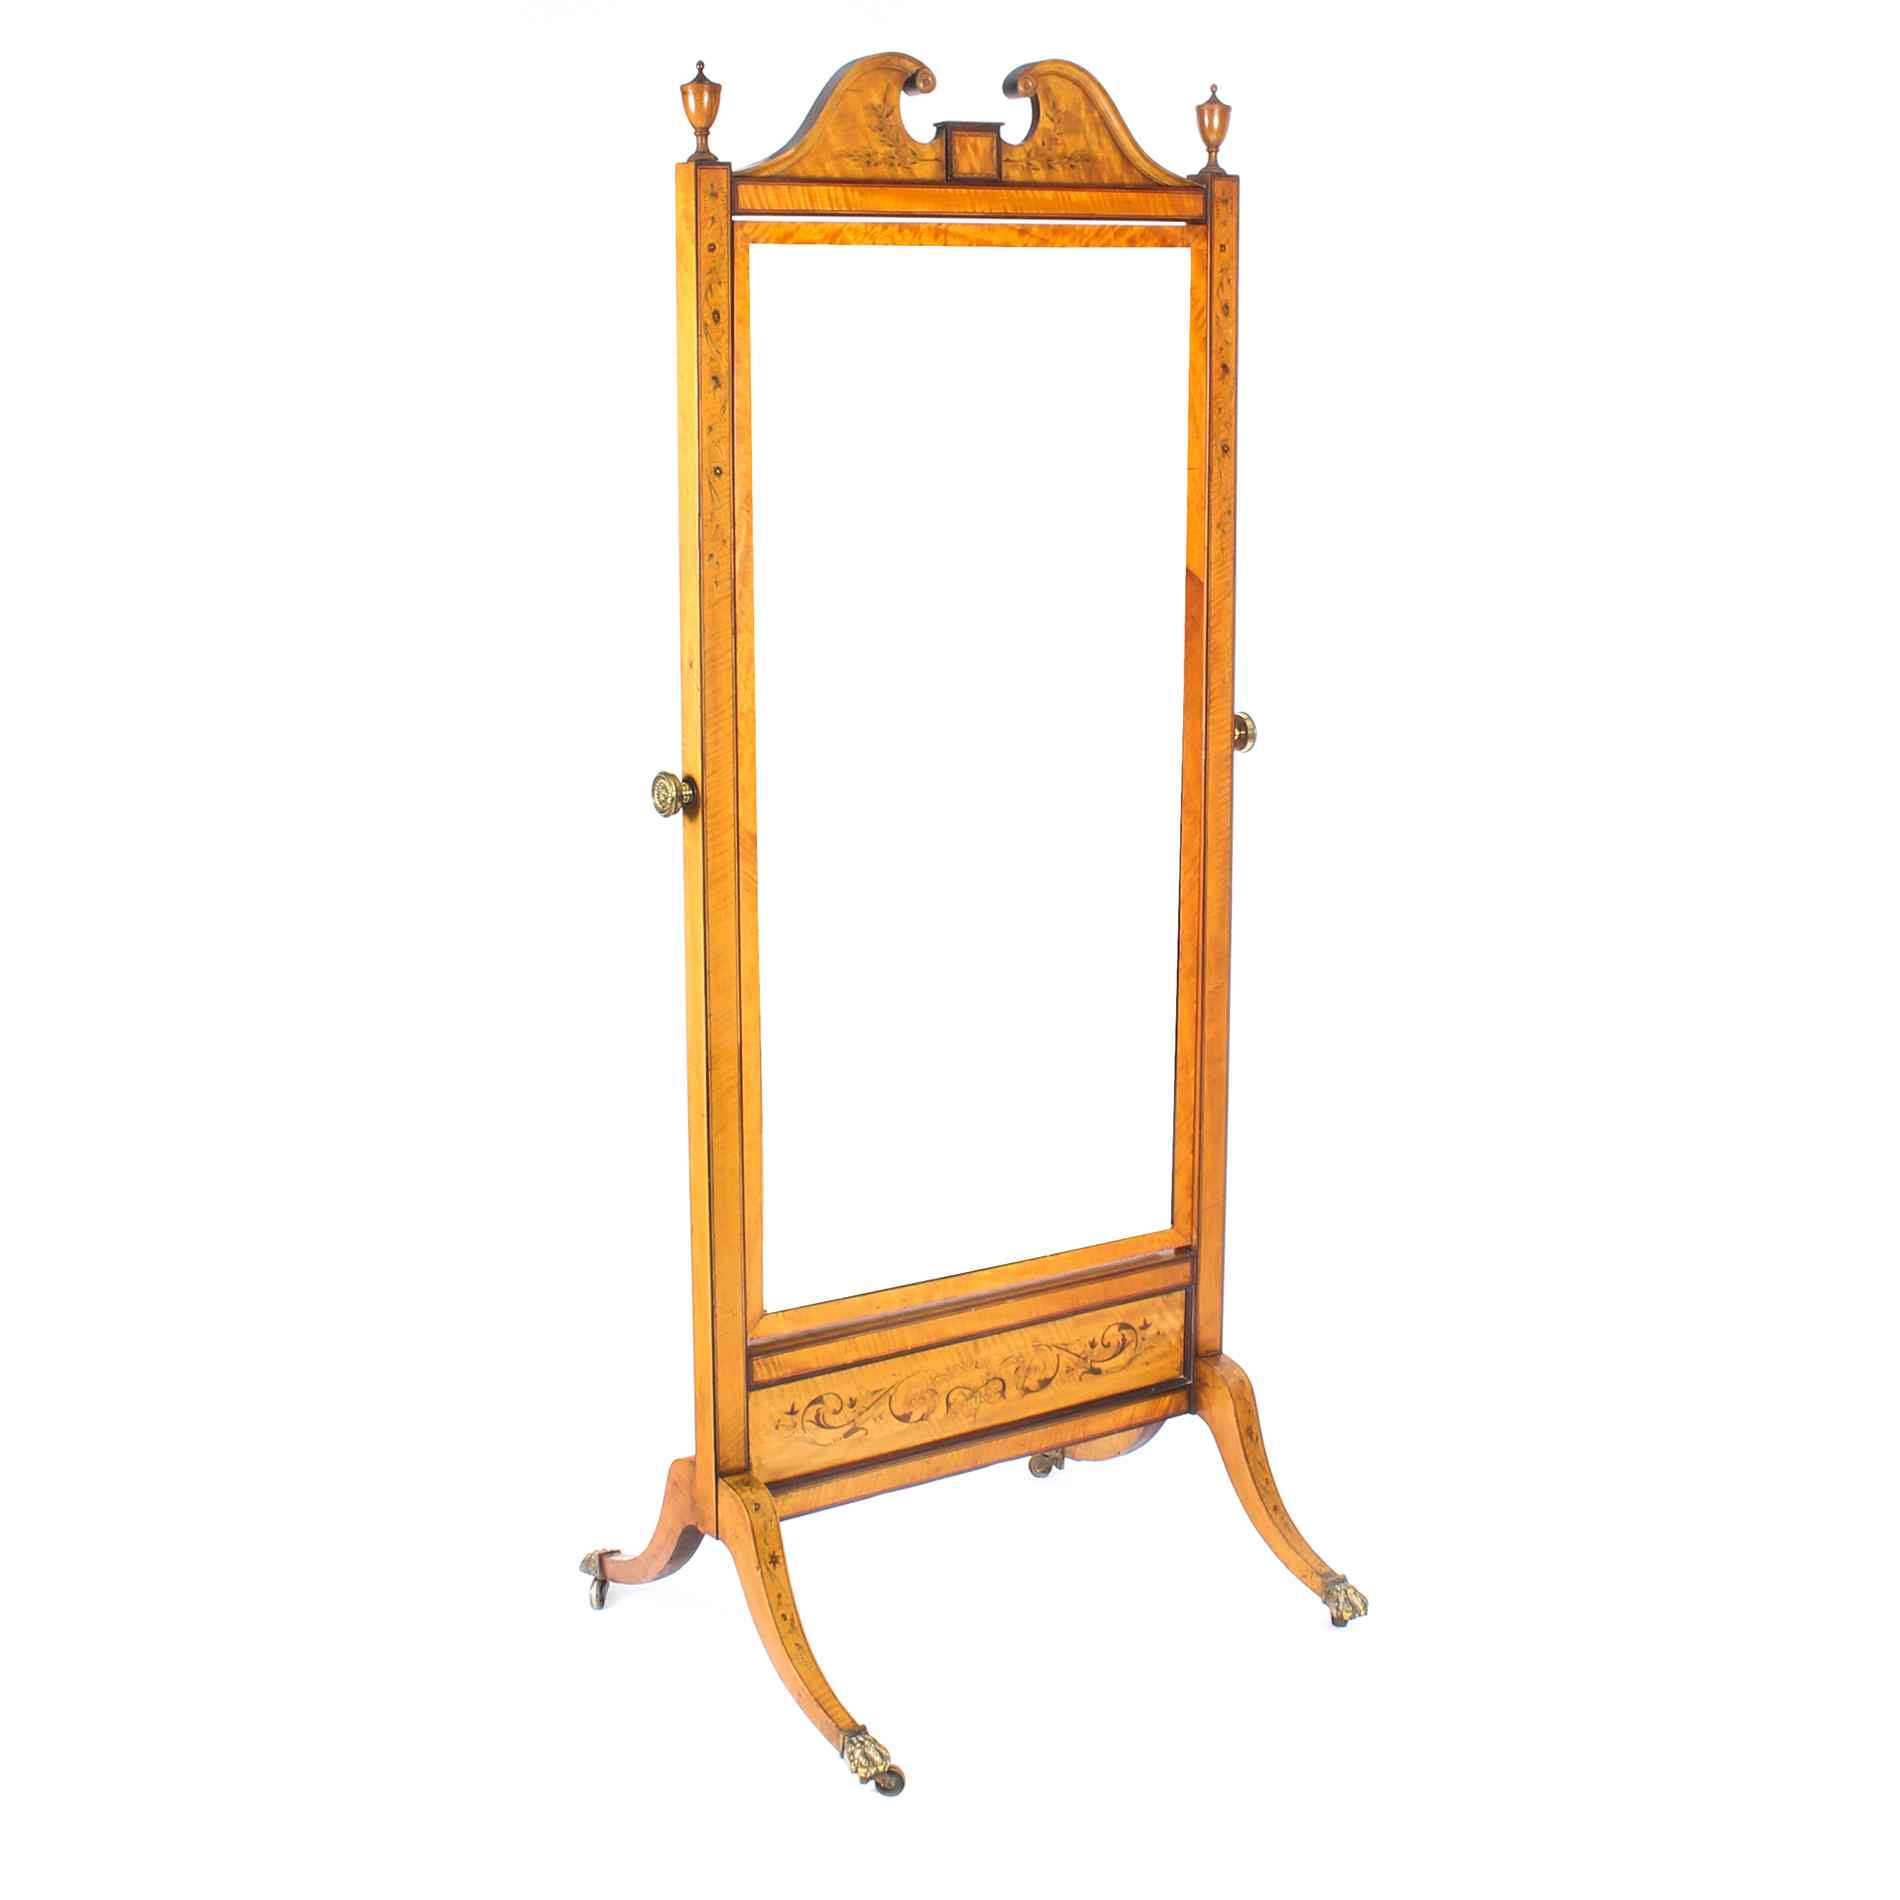 Antique Edwardian Satinwood Marquetry Inlaid Cheval Mirror